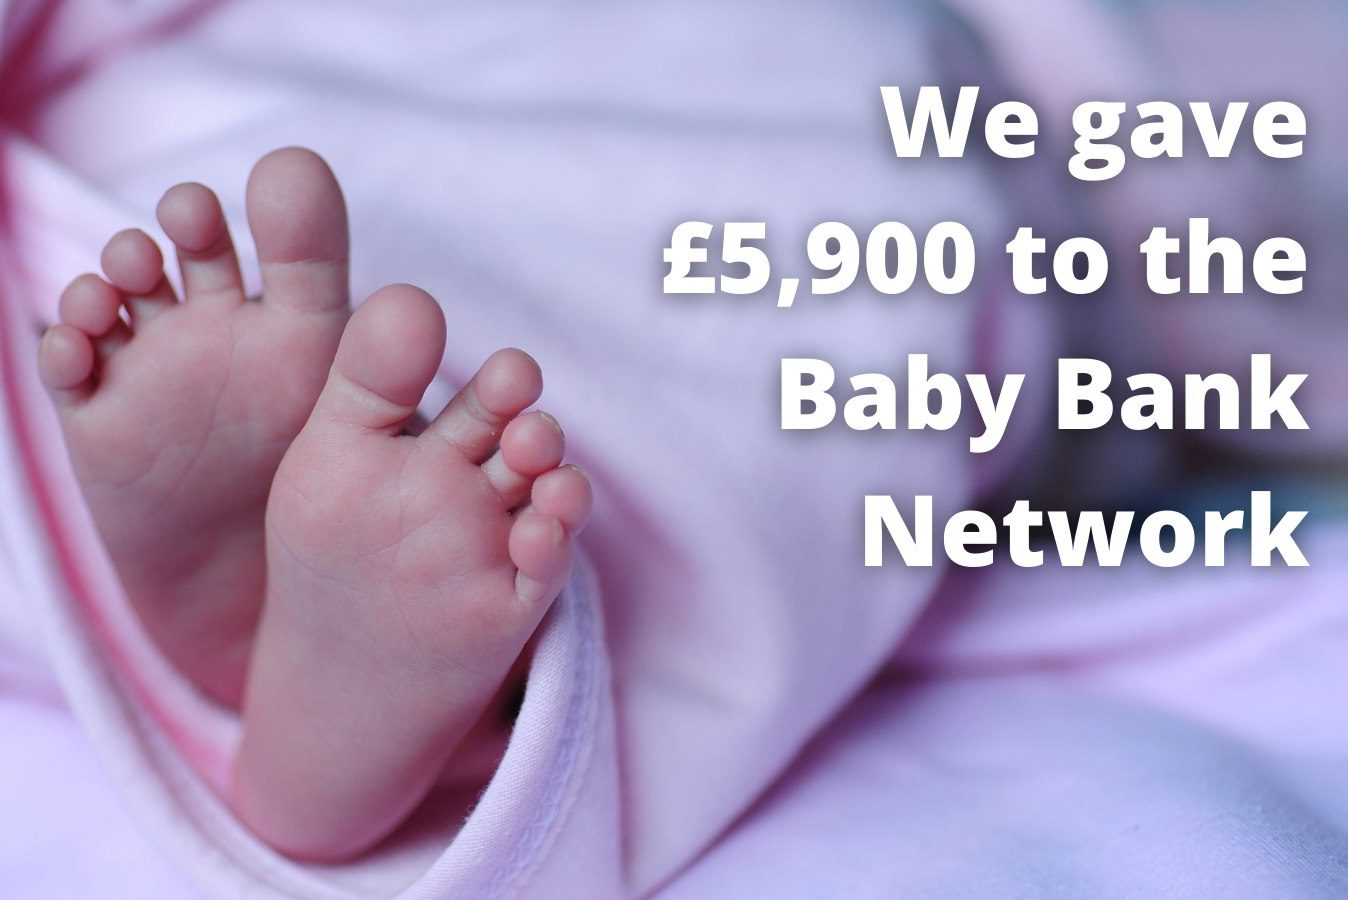 MCF Gives £5,000 to the Baby Bank Network